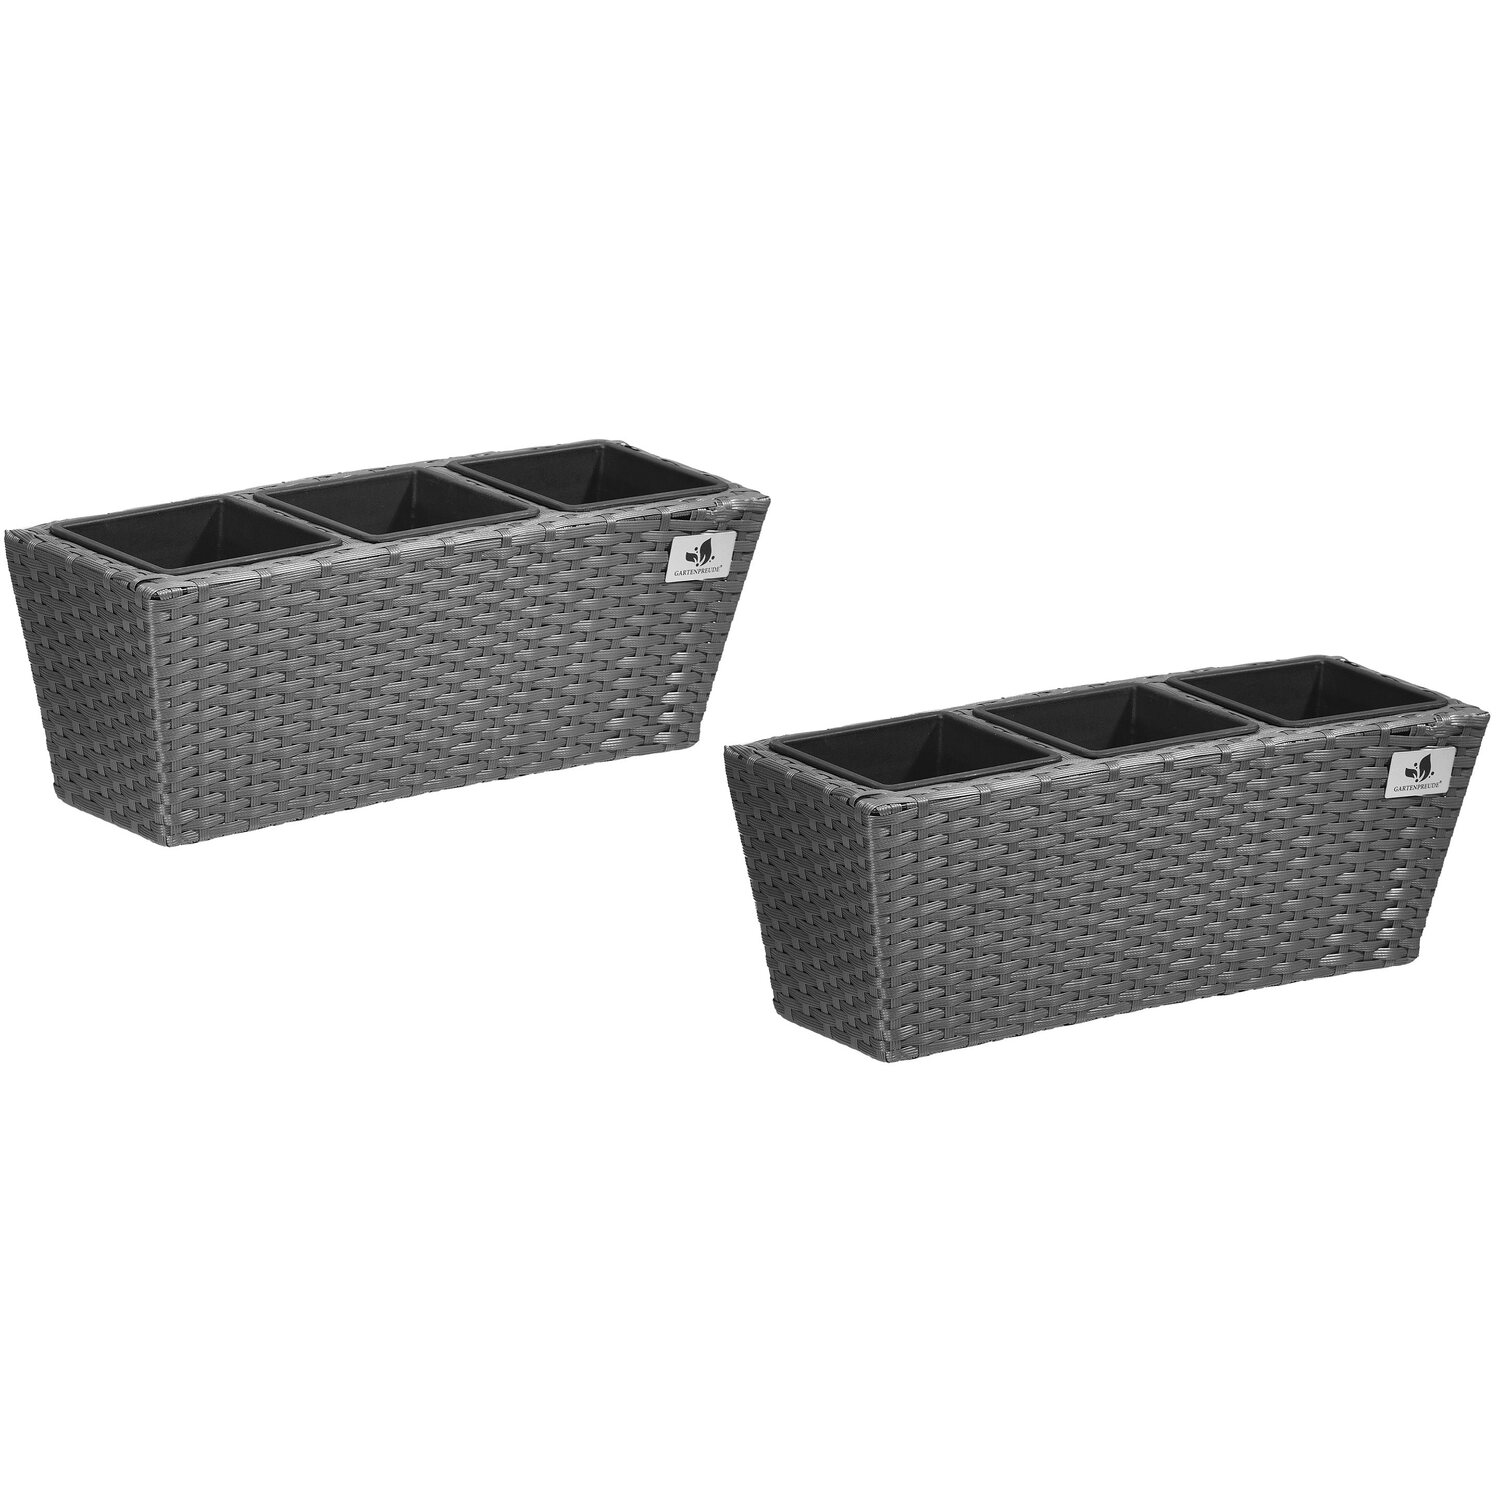 gartenfreude balkonkasten polyrattan inkl aufh ngung 47 cm x 17 cm grau 2 st ck kaufen bei obi. Black Bedroom Furniture Sets. Home Design Ideas